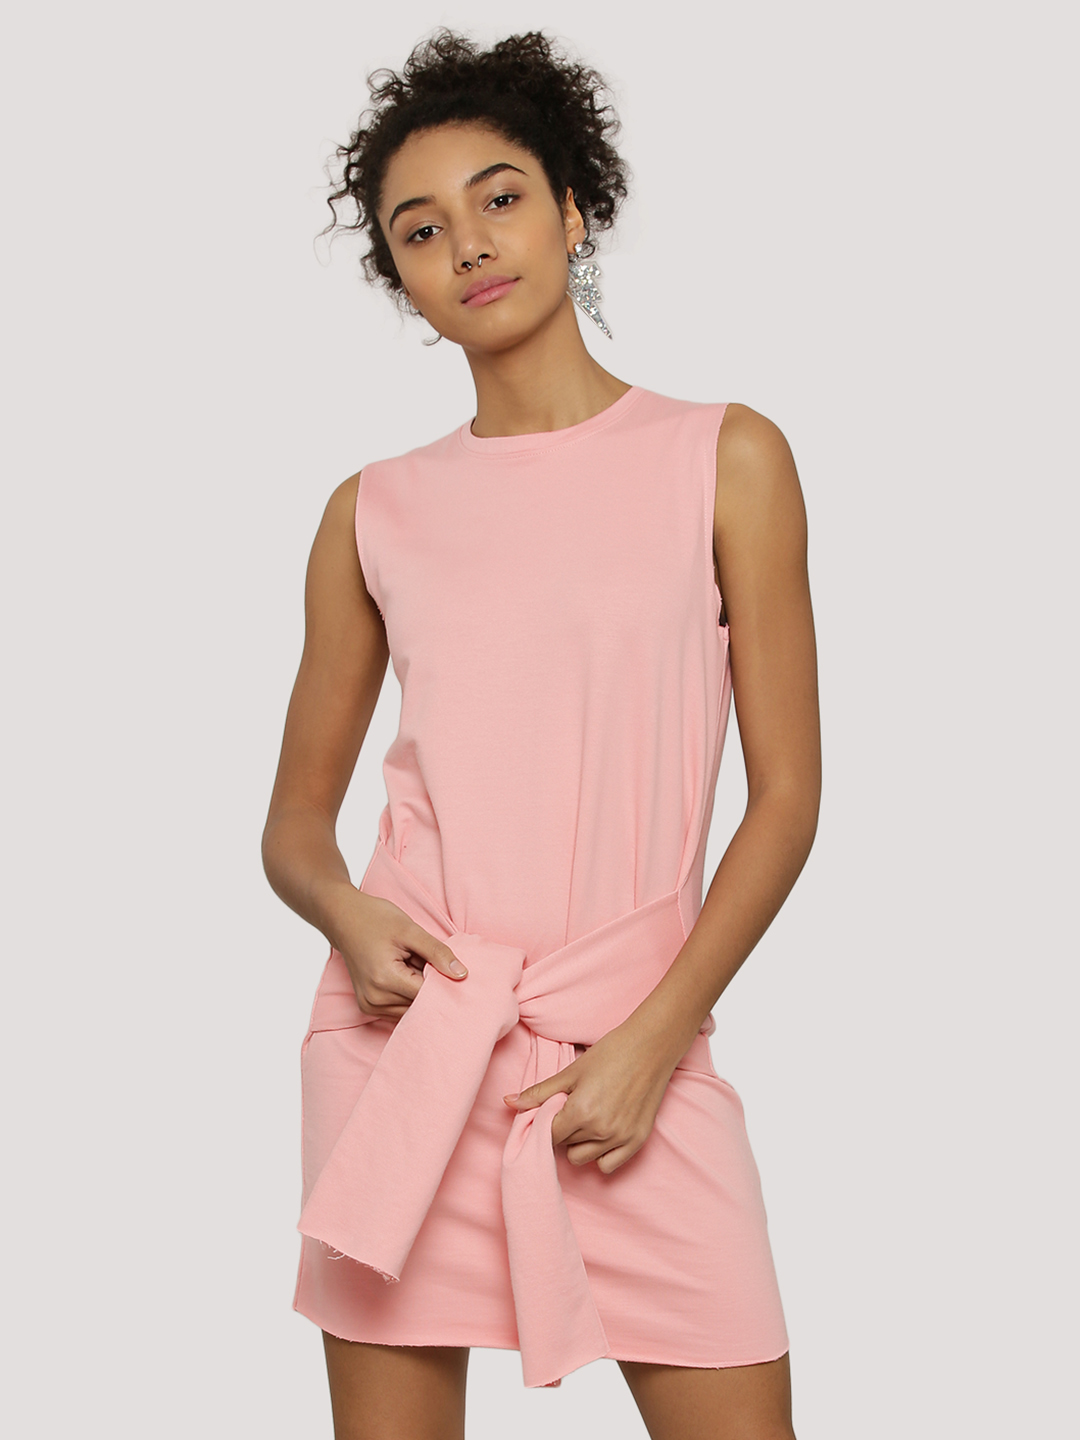 Evah London Salmon Pink Sweat Dress With Front Tie Up 1